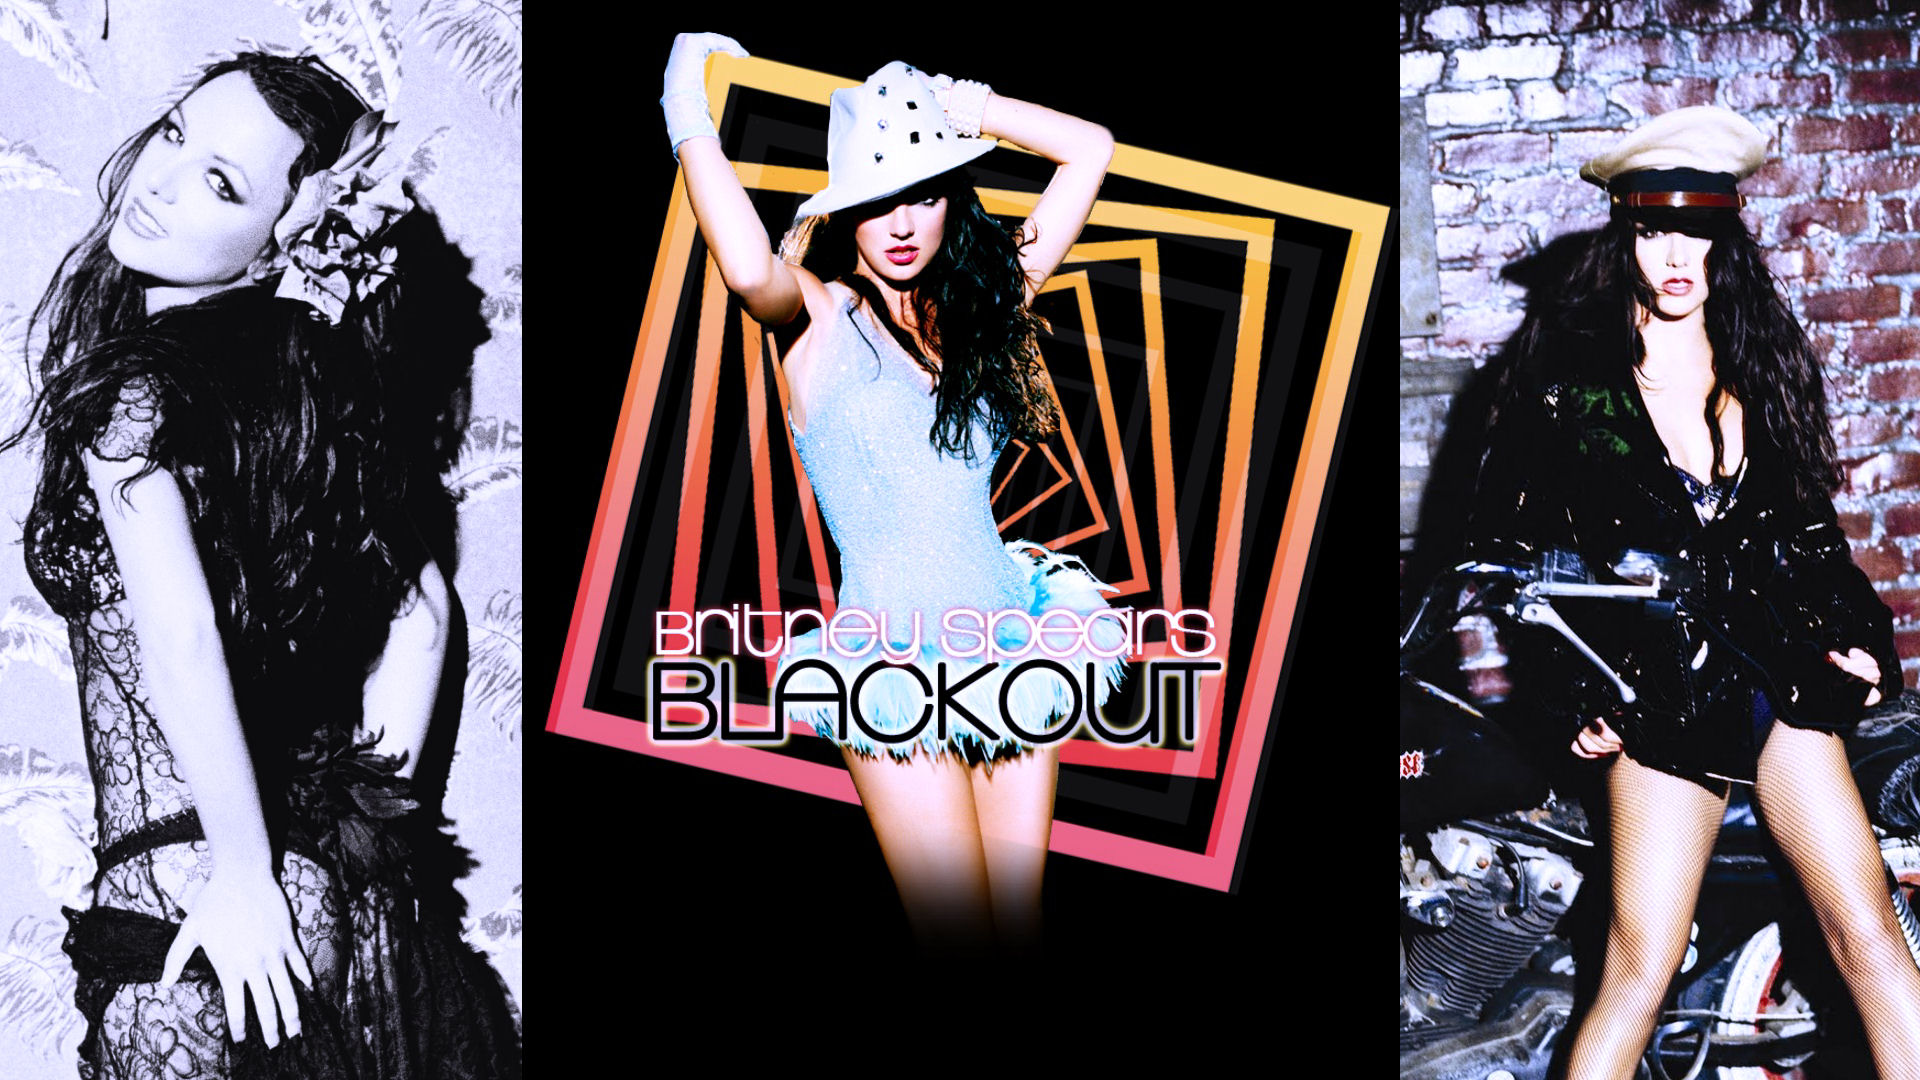 Britney spears blackout album pictures Britney Spears News, Pictures, and Videos m